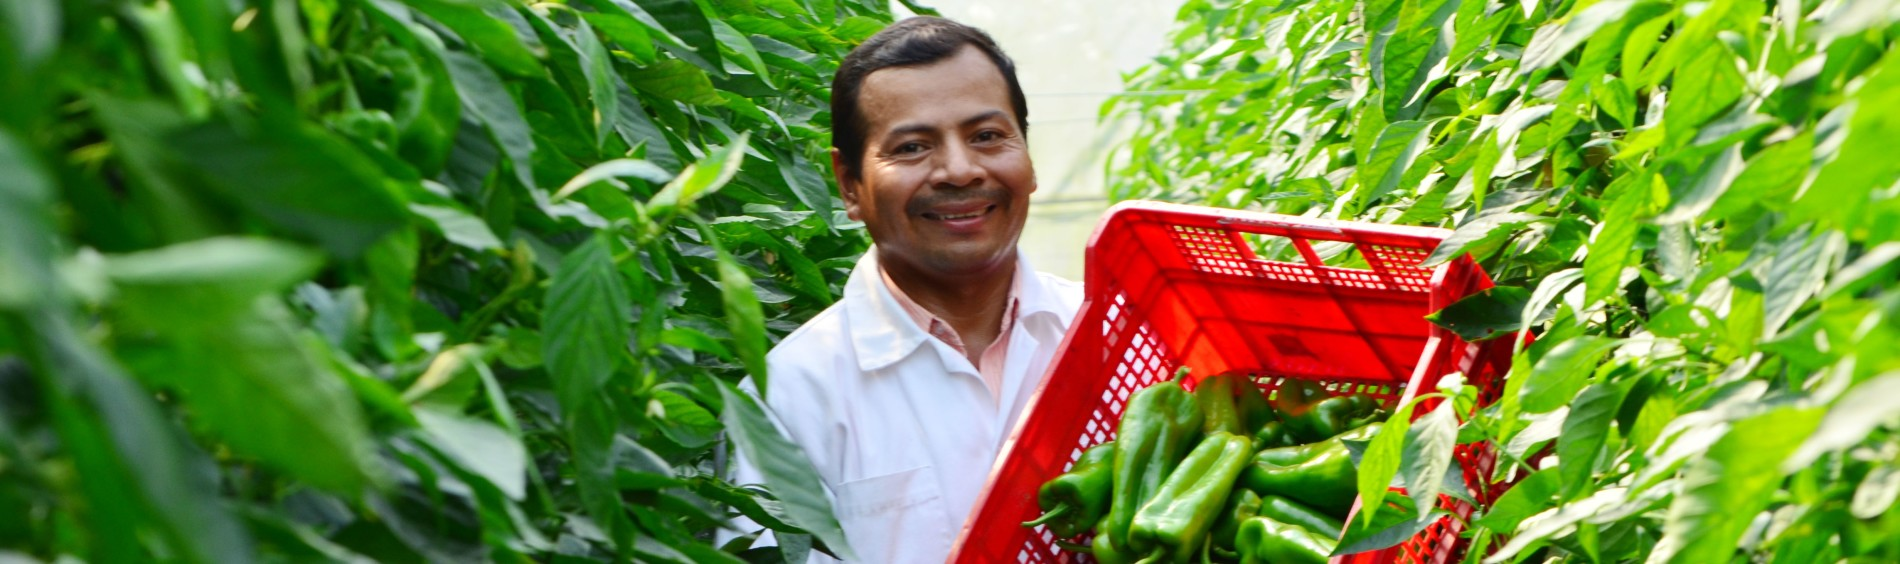 A Central America farmer holds sustainable produce